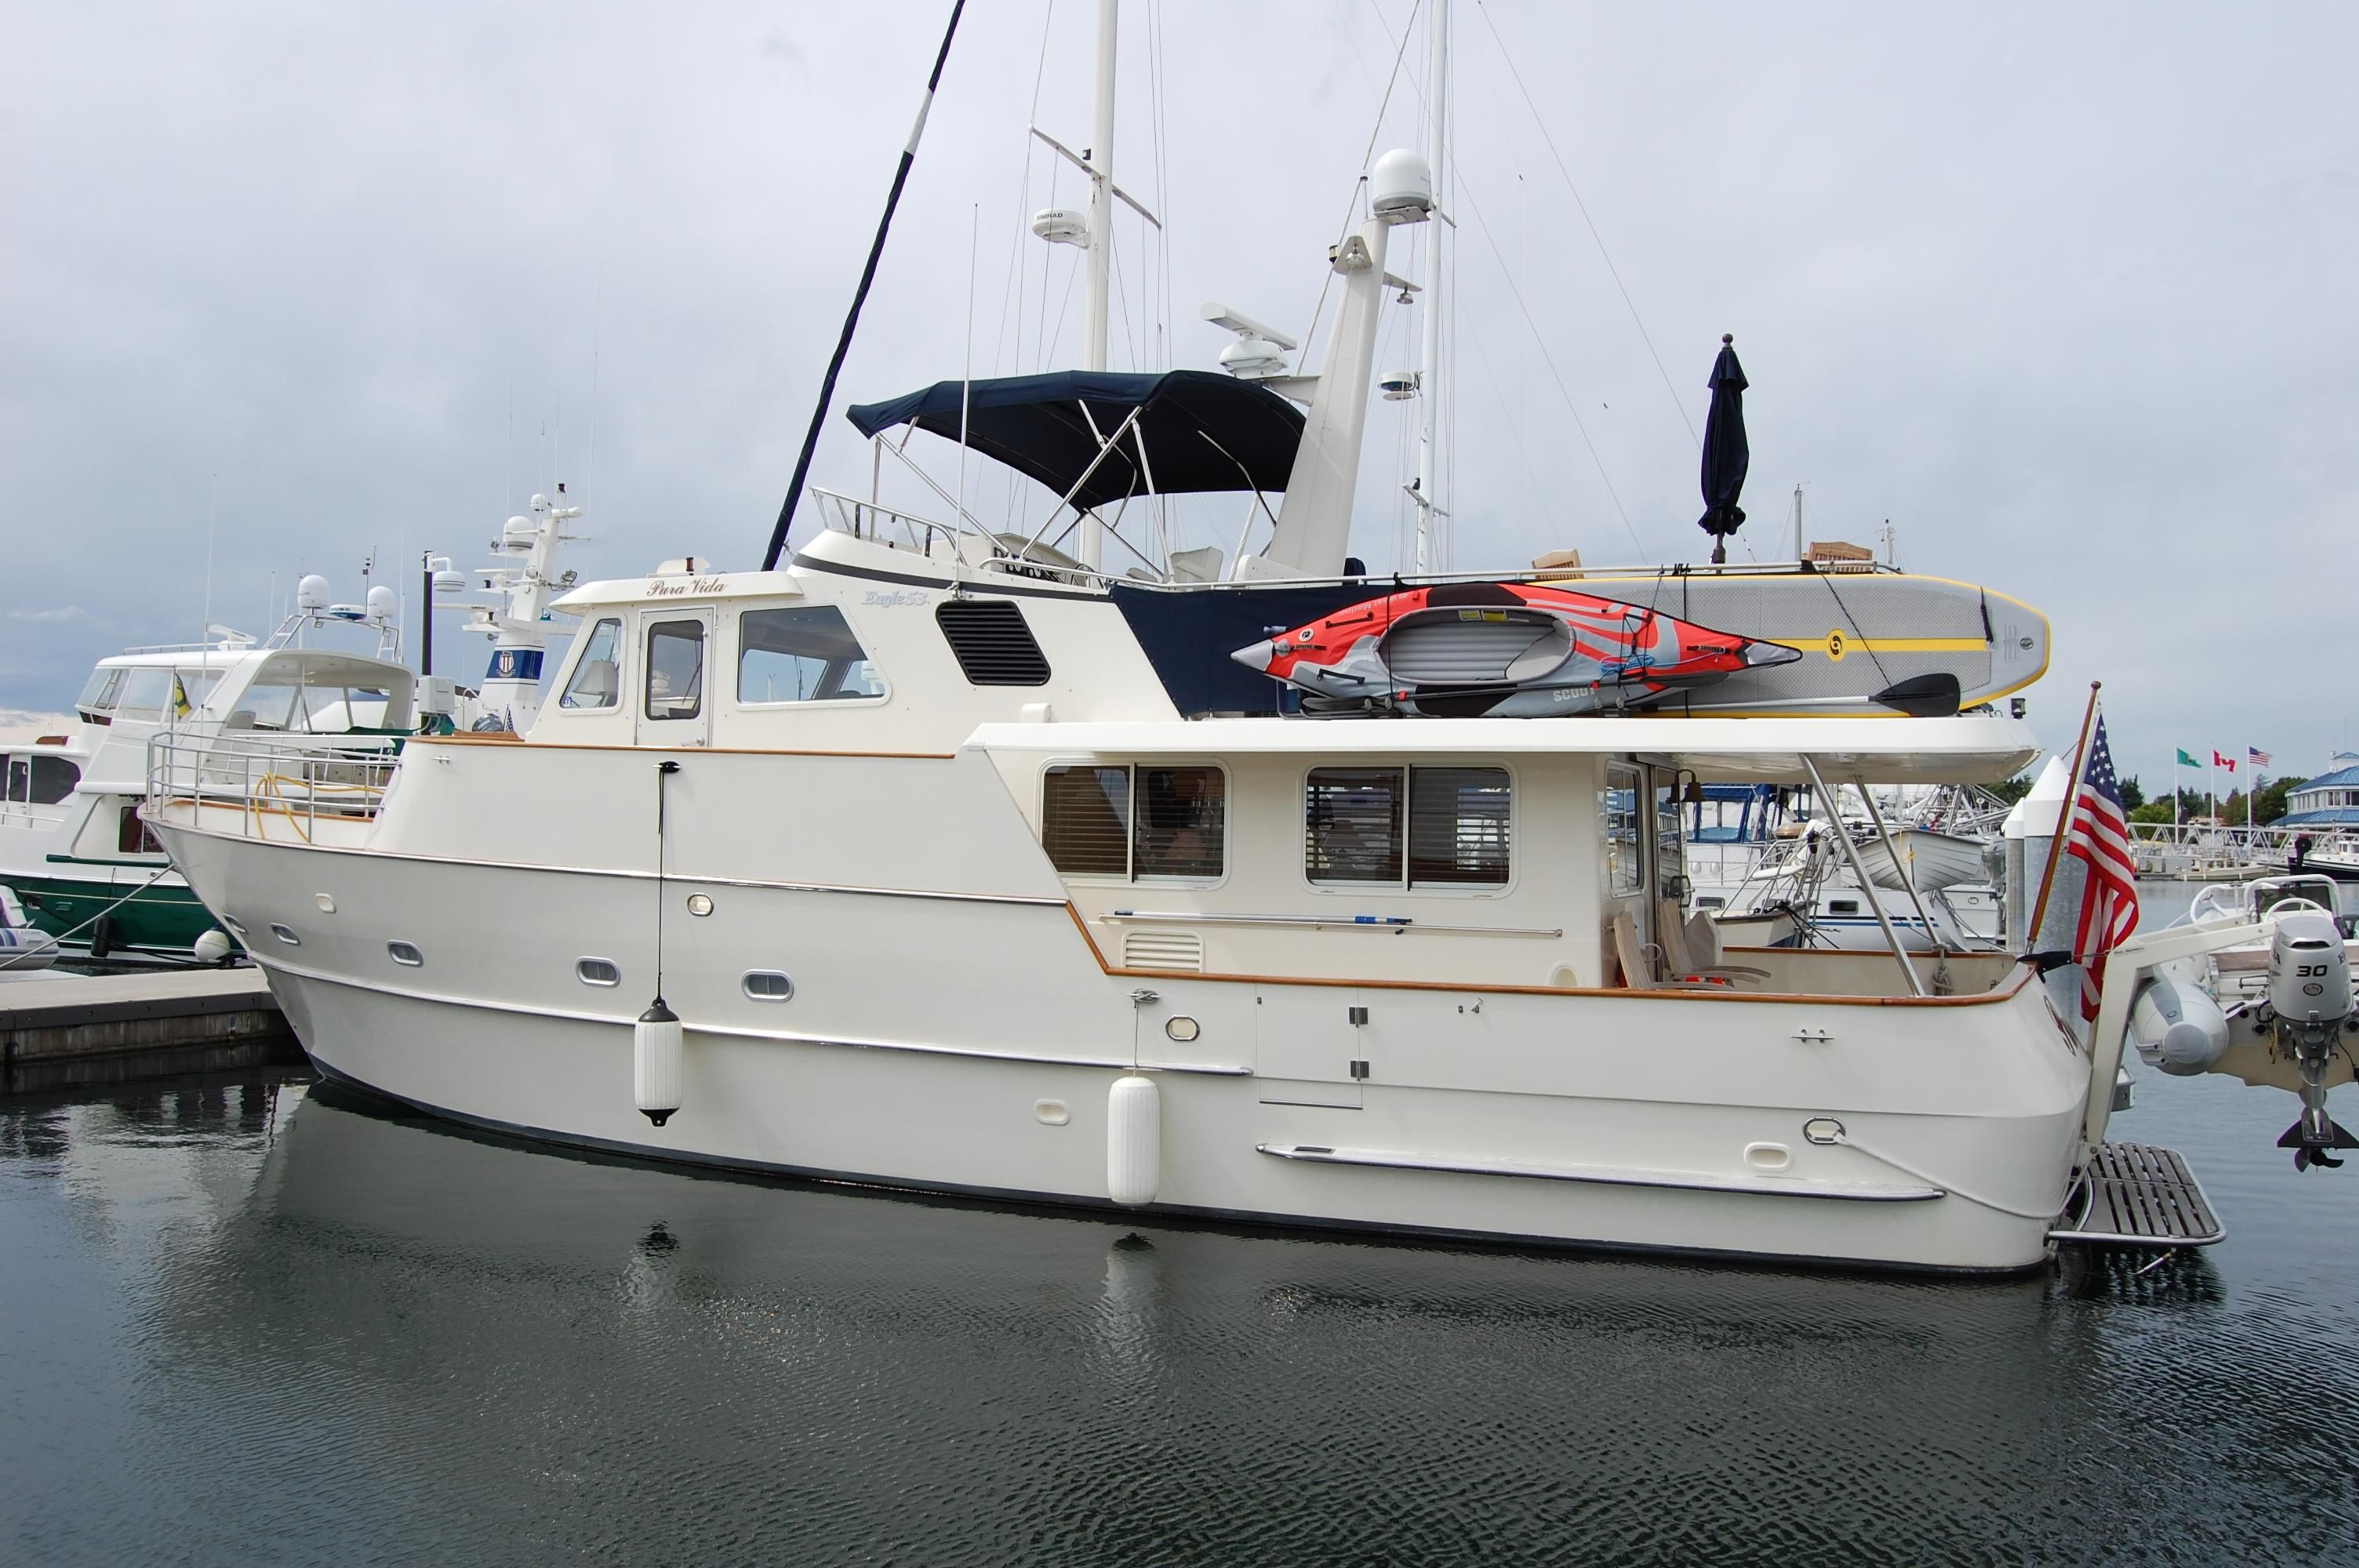 2002 Eagle Pilothouse Power Boat For Sale Www Yachtworld Com